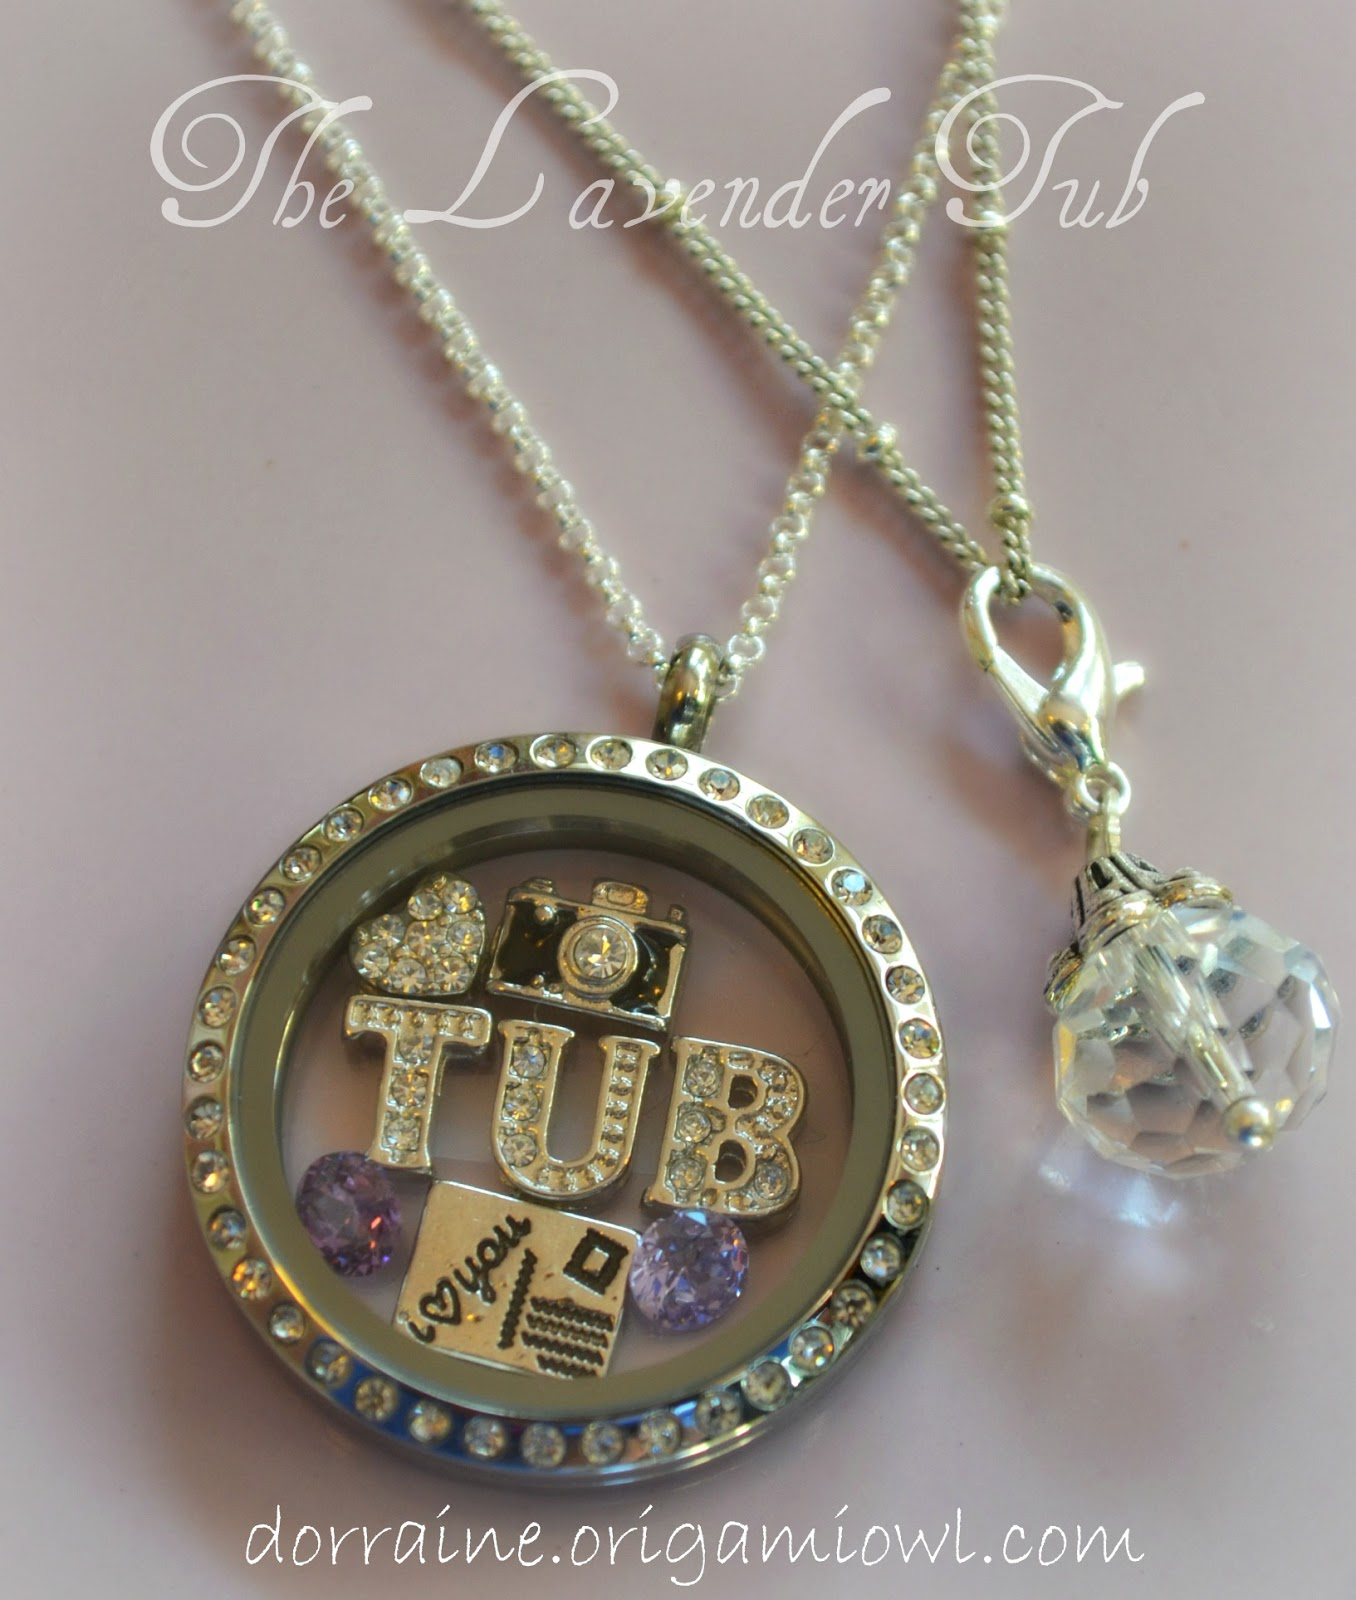 The Lavender Tub: Origami Owl Living Lockets - photo#5